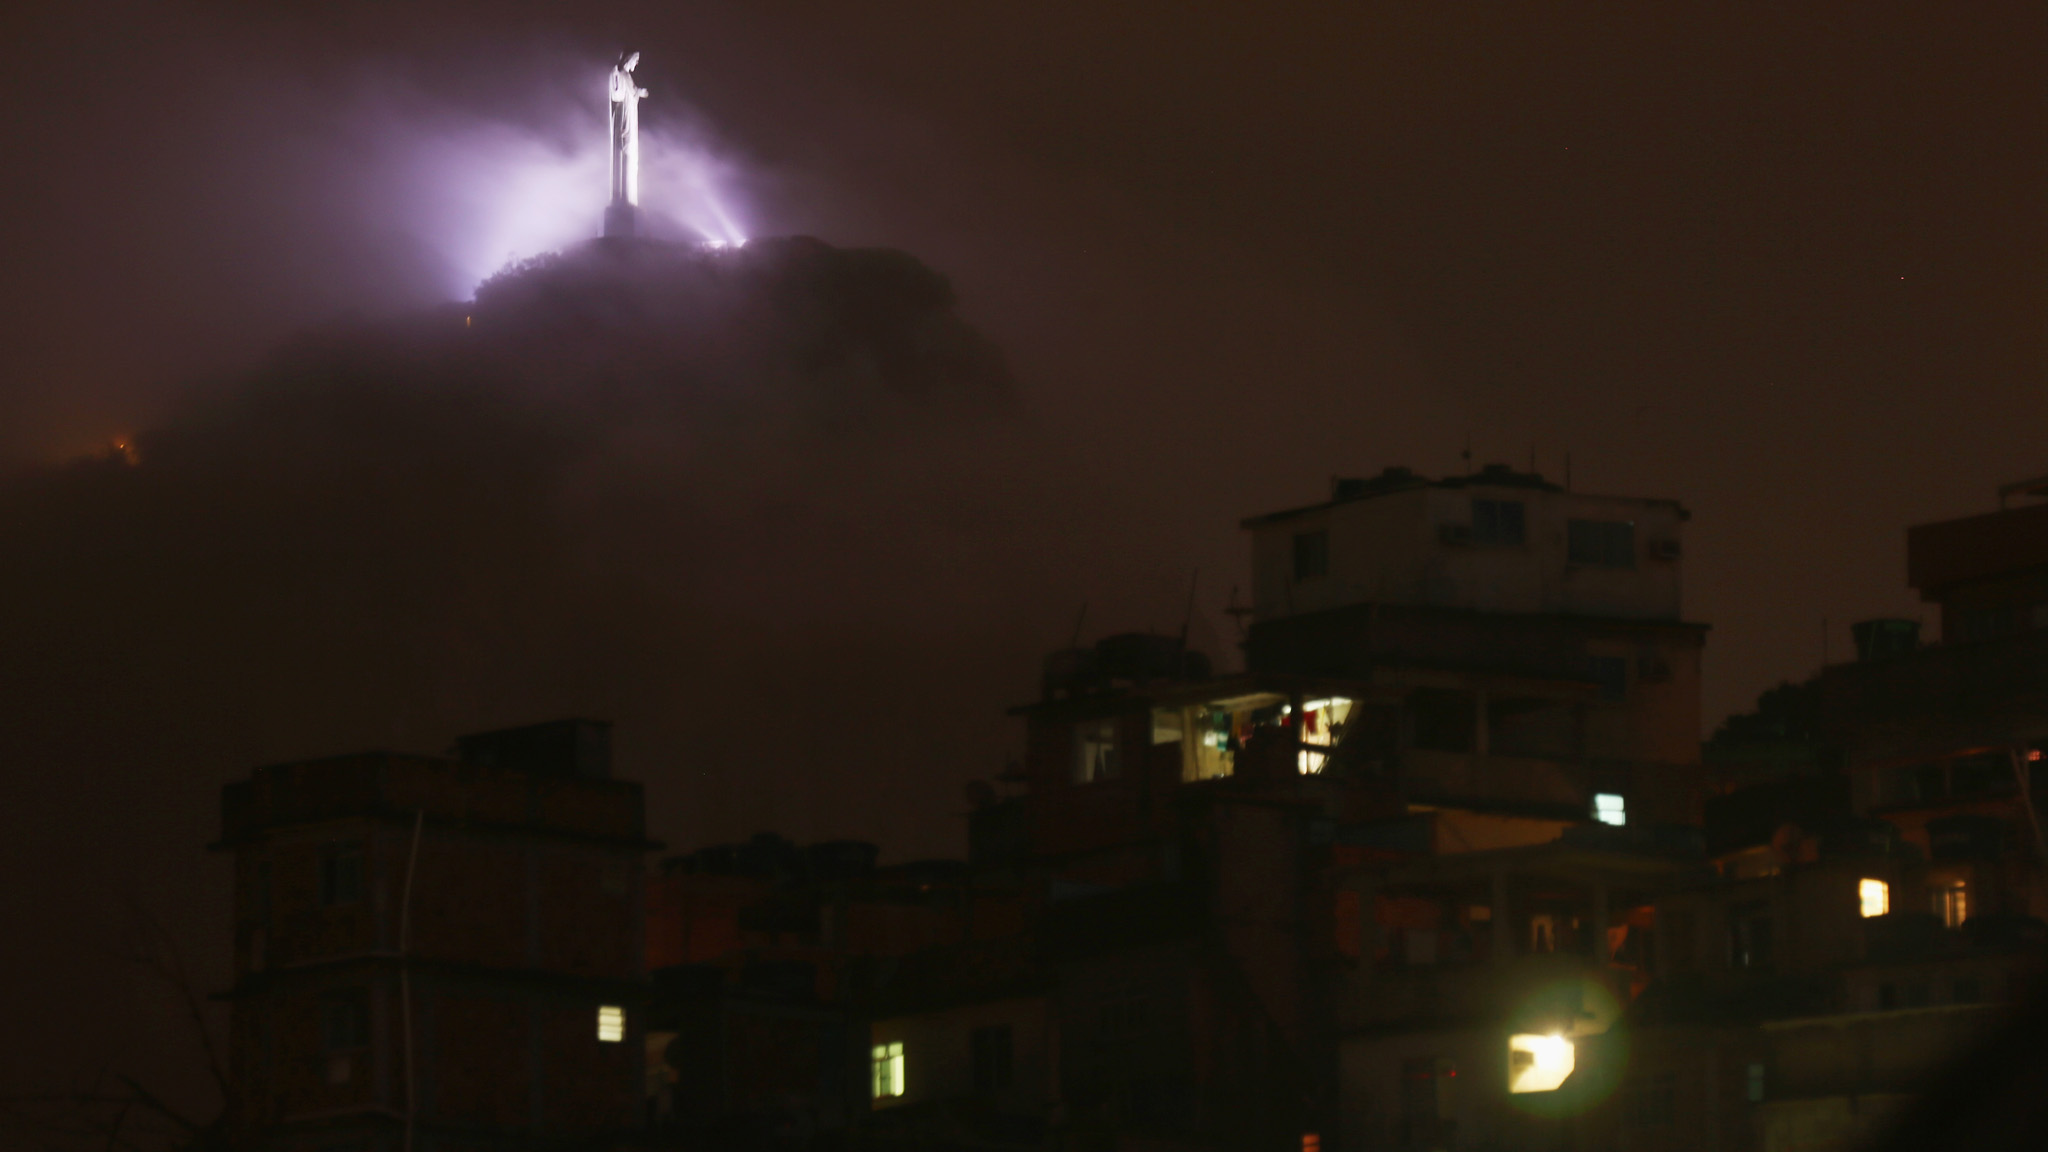 Fog Hovers Beneath Christ the Redeemer Statue...RIO DE JANEIRO, BRAZIL - JANUARY 04:  Fog hovers beneath Christ the Redeemer statue with the Cantagalo 'favela' in the foreground on January 4, 2016 in Rio de Janeiro, Brazil. The Rio 2016 Olympic Games commence in August.  (Photo by Mario Tama/Getty Images)